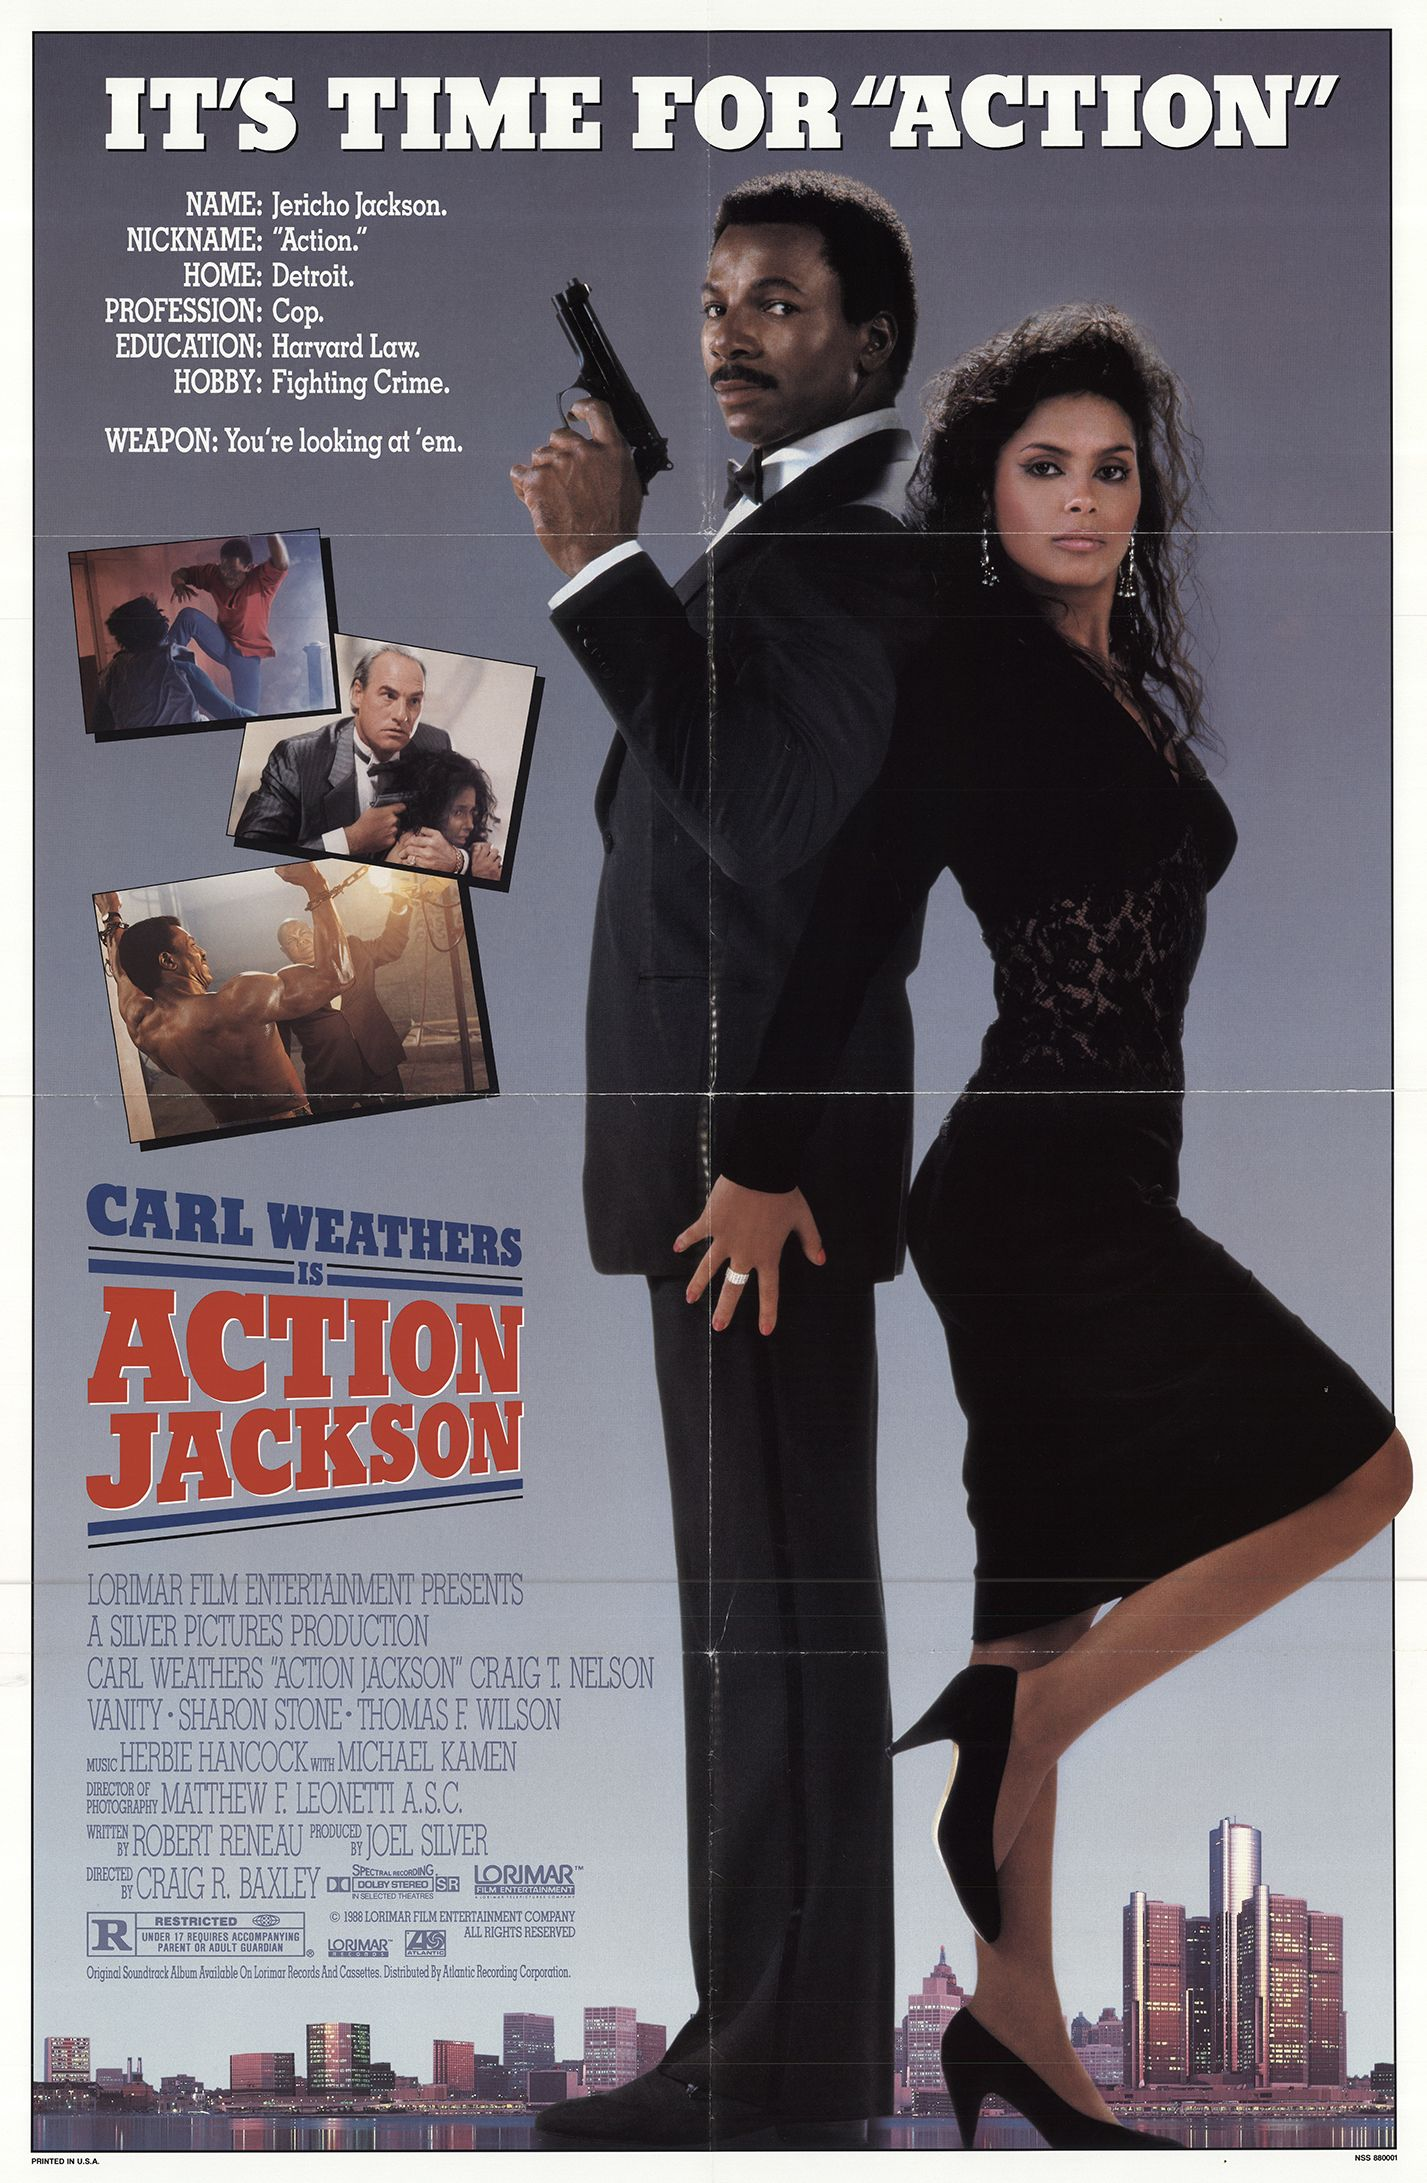 action jackson full movie free download 720p